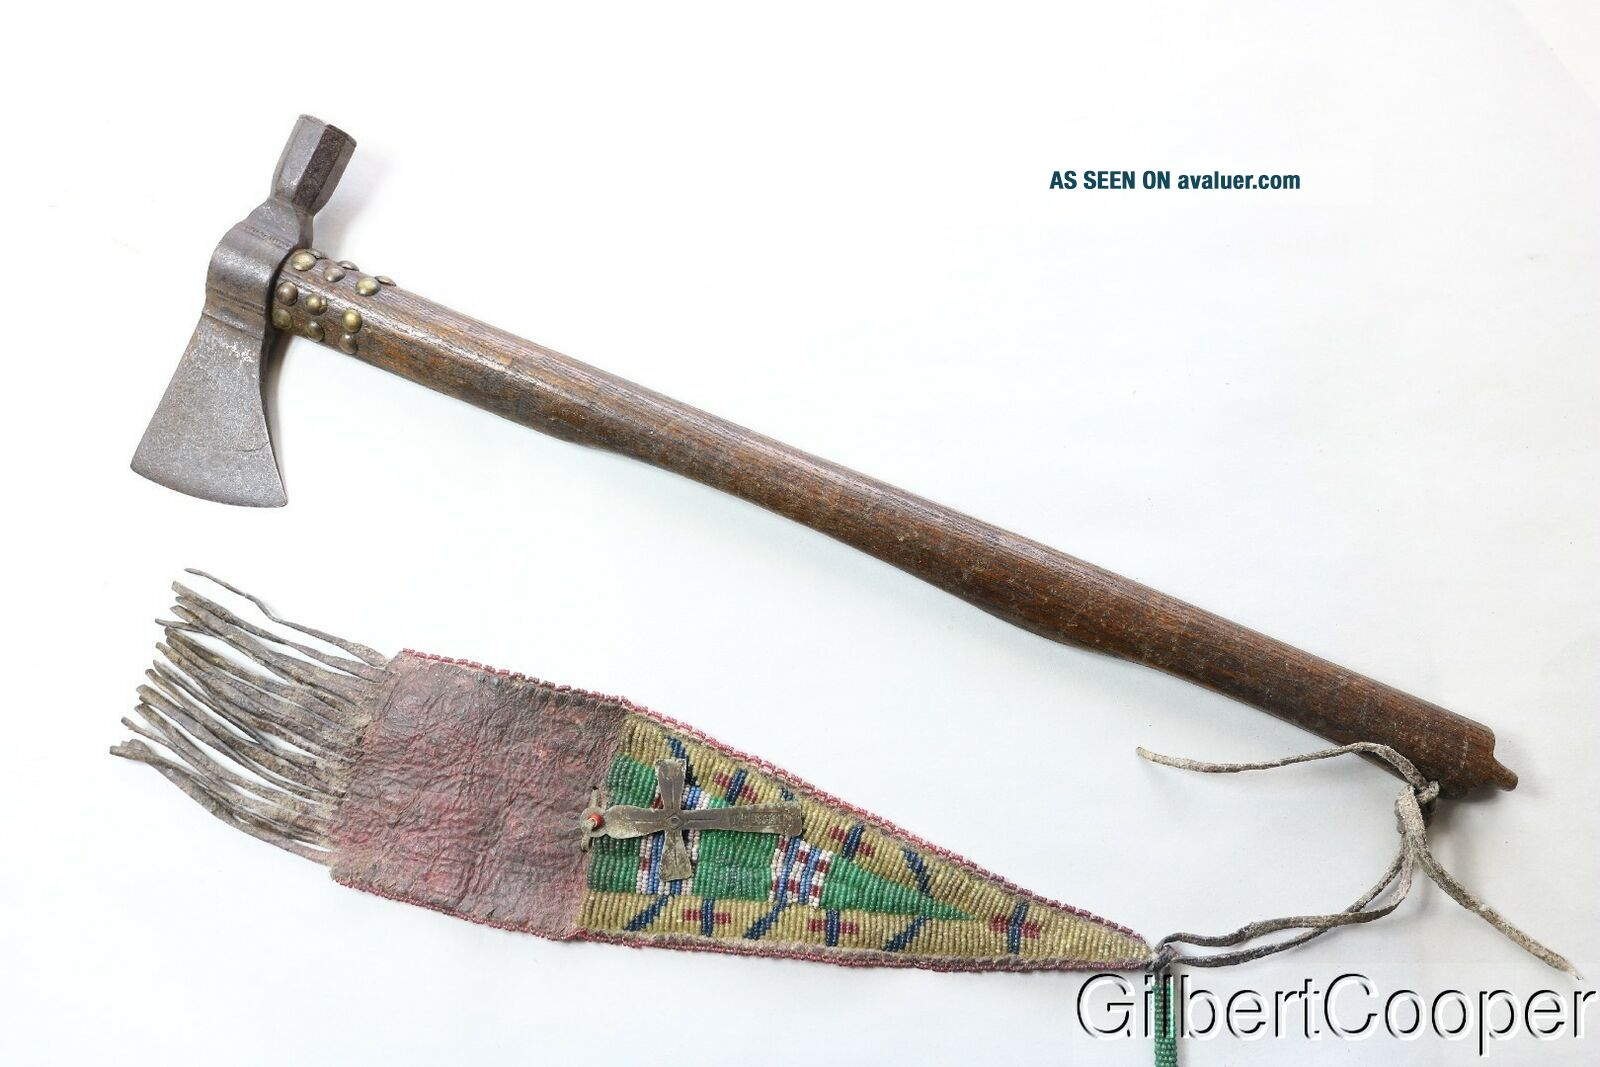 19TH CENTURY PIPE TOMAHAWK - SIOUX BEADED DROP